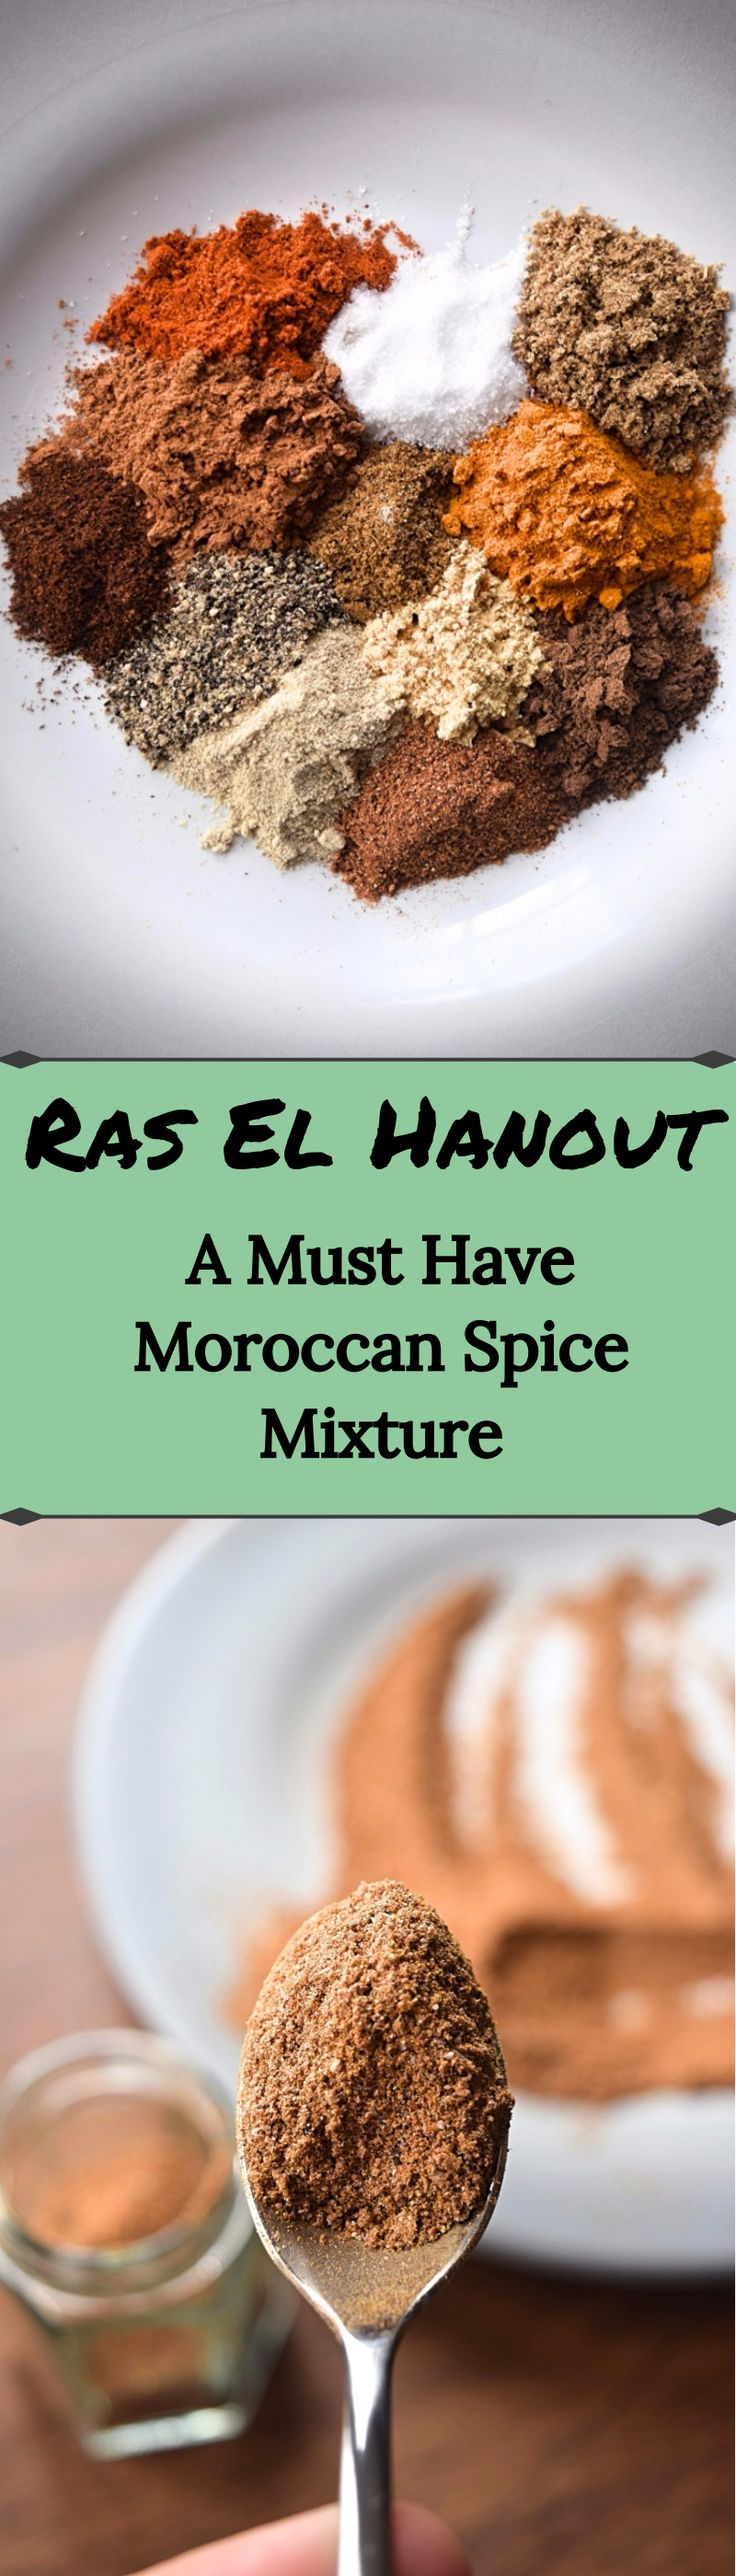 The magical Moroccan spice Ras El Hanout - Ras El Hanout is a common spice mixture in Moroccan food. It's warm, spicy, and pairs wonderfully with honey and dried fruit, which is an often used combo when cooking Moroccan food. It will keep for about a month. – A Stray Kitchen